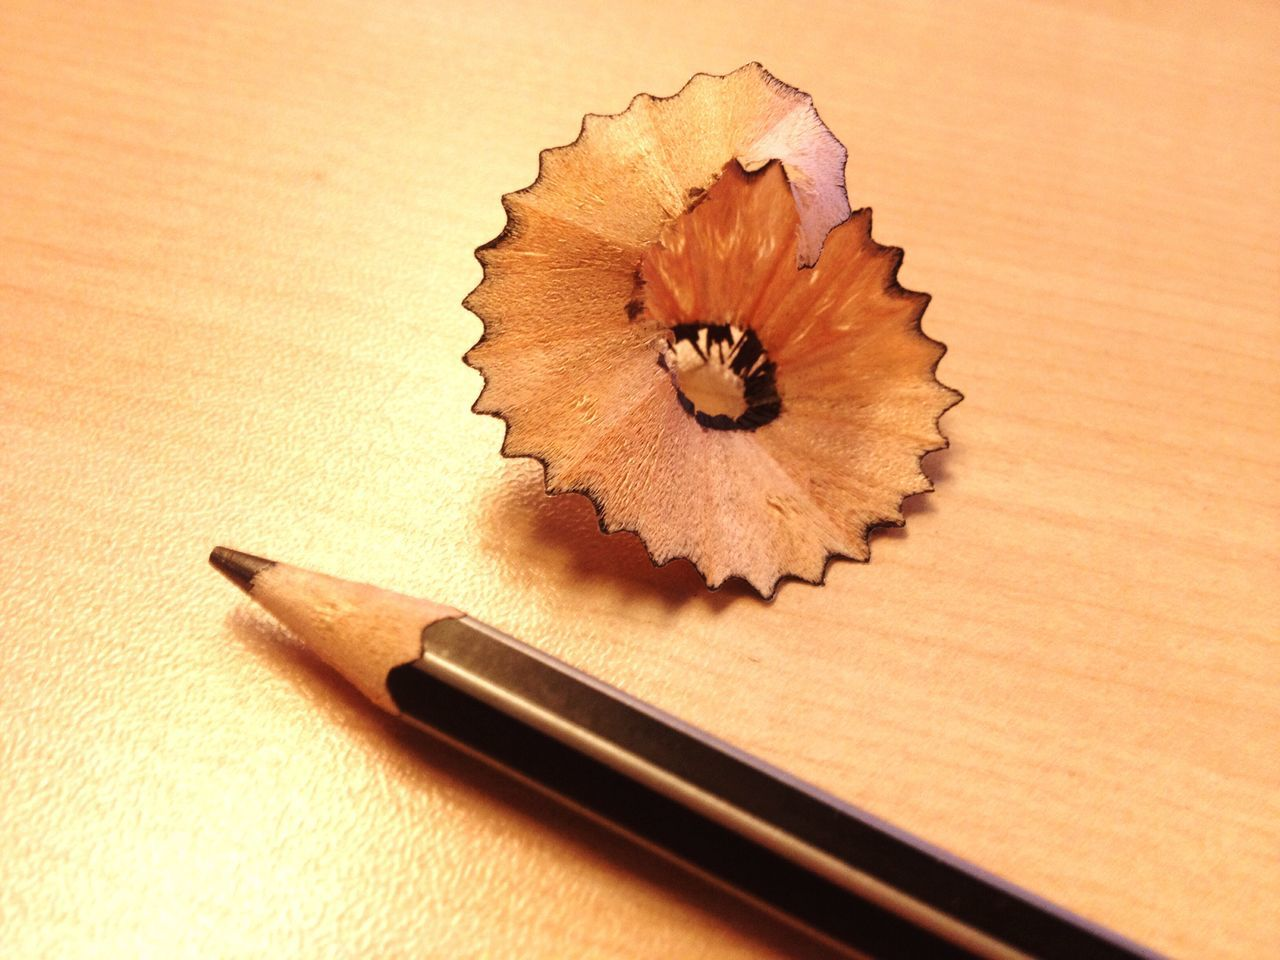 Pencil Shavings Pencil Wood - Material Curled Up Close-up No People Desk Office Indoors